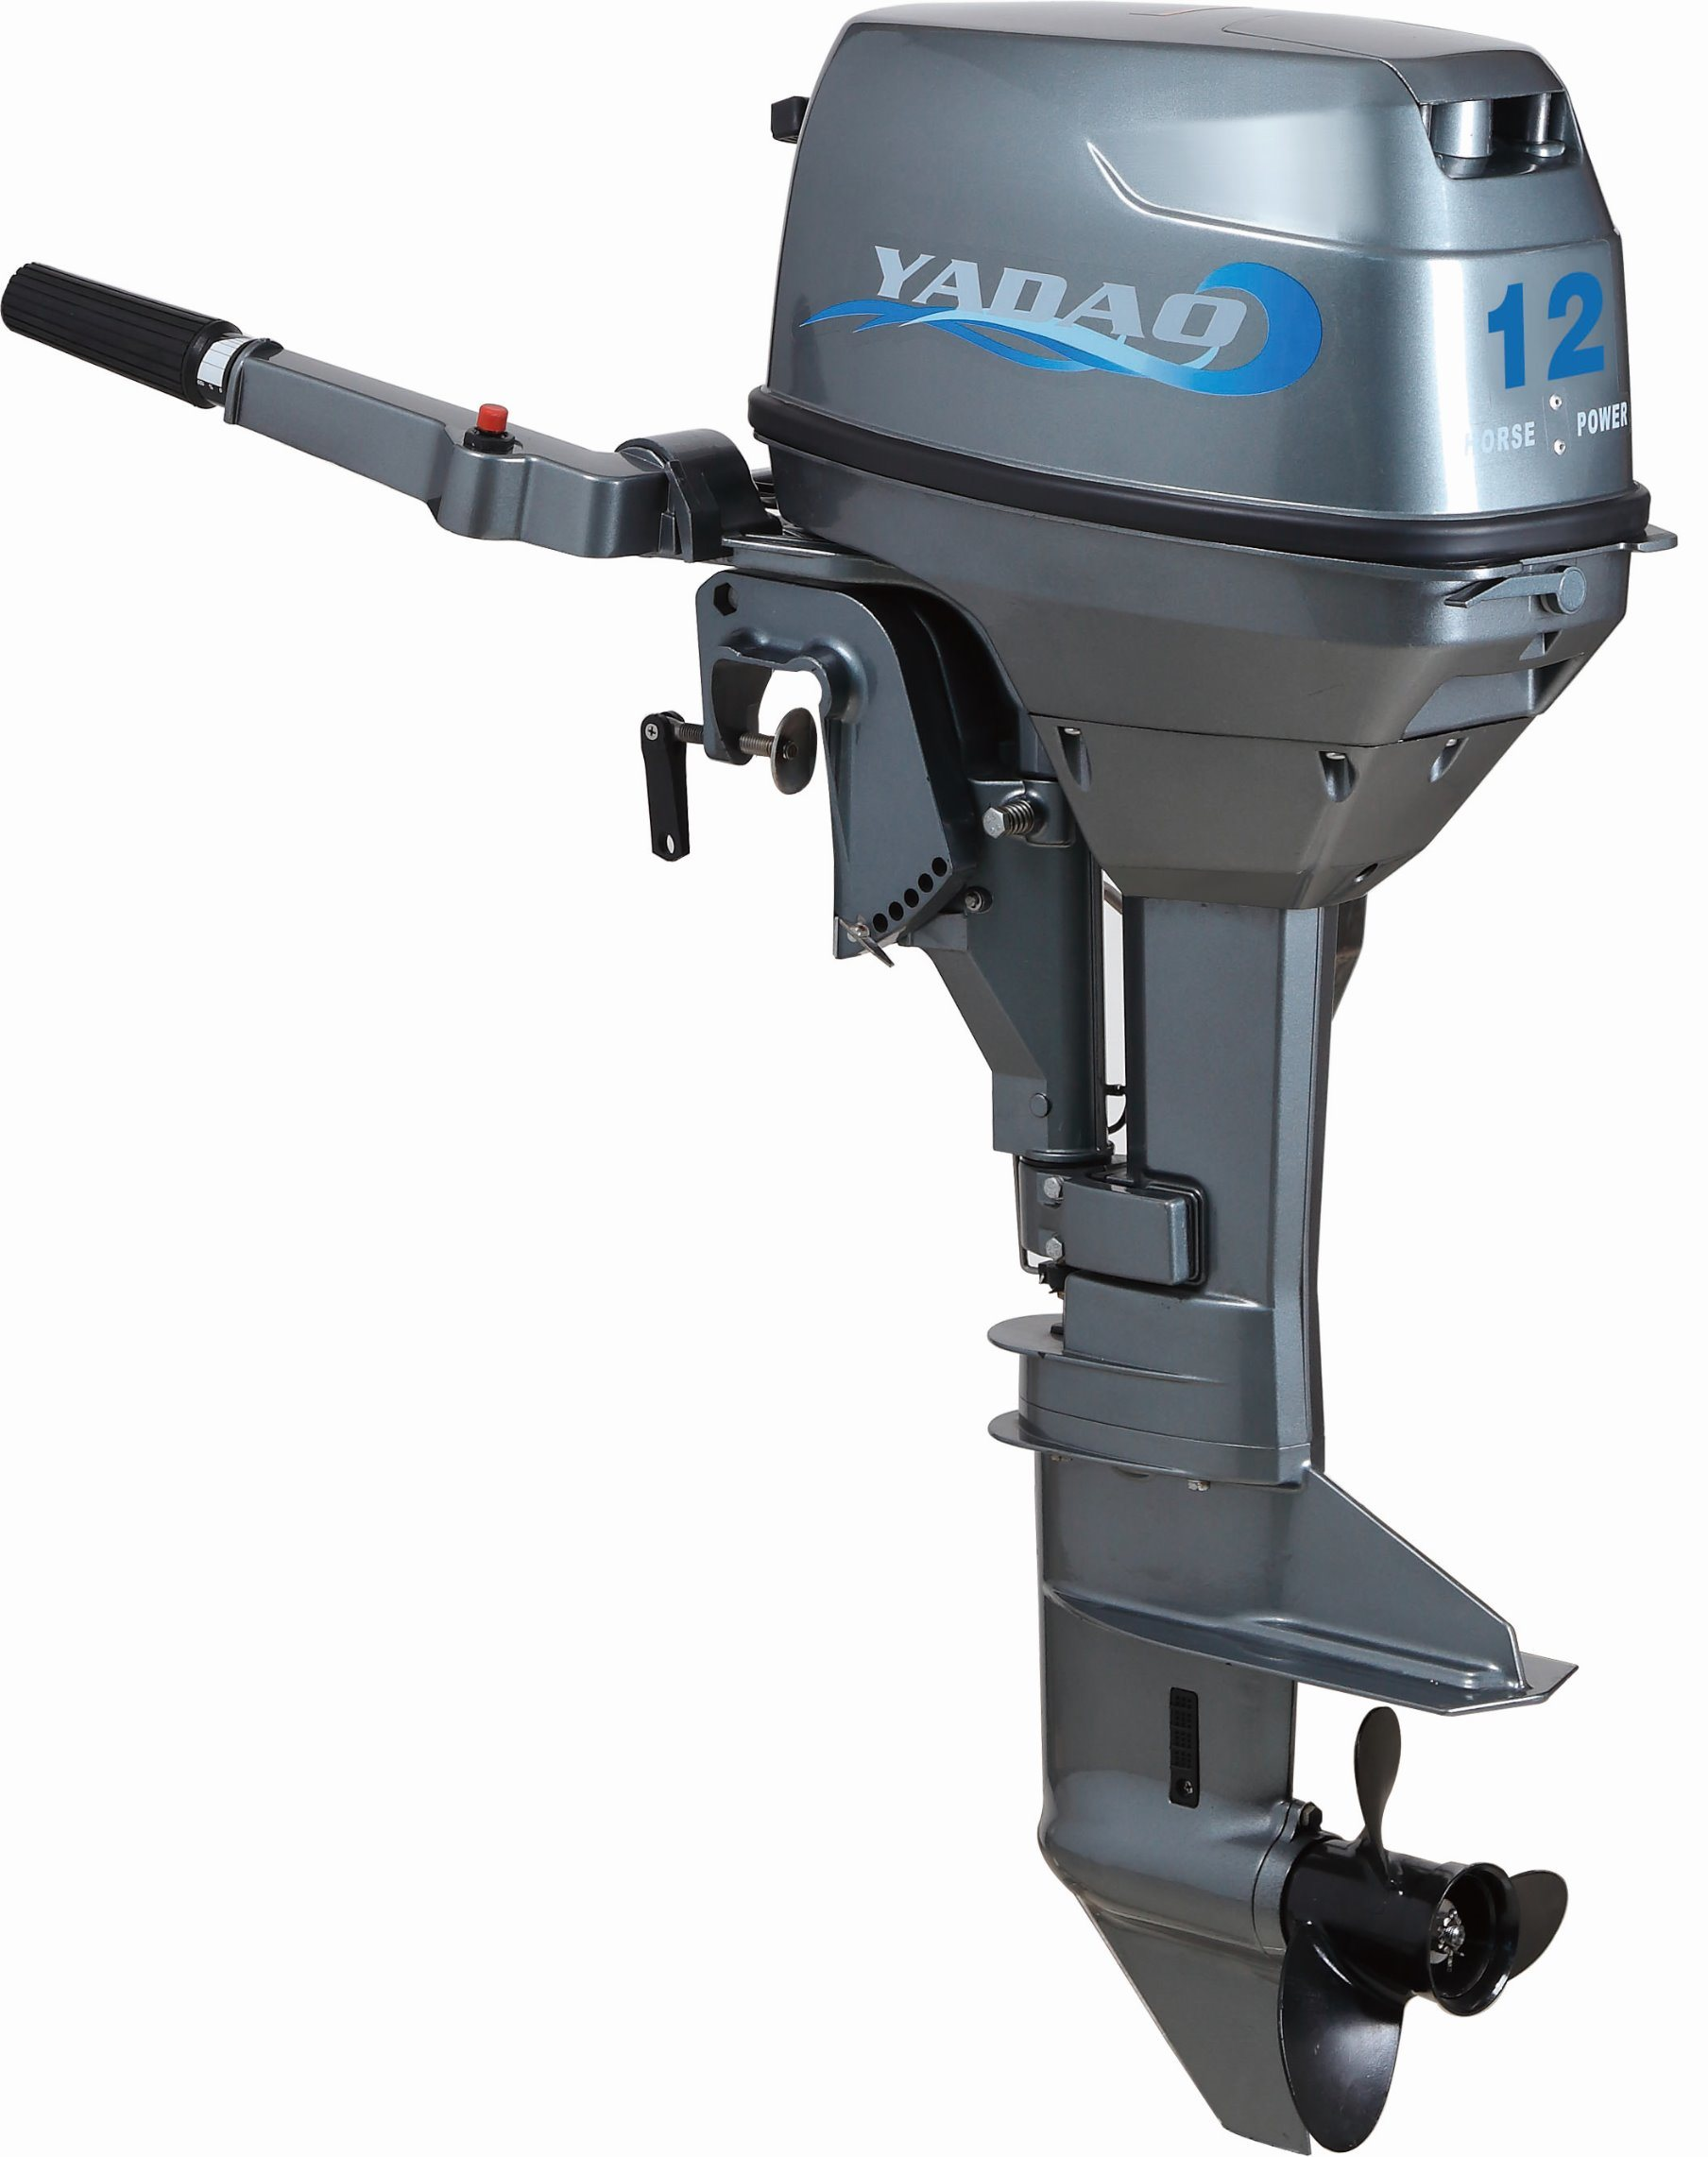 Popular Models Yadao Sale 12HP 2 Stroke Outboard Boat Motors